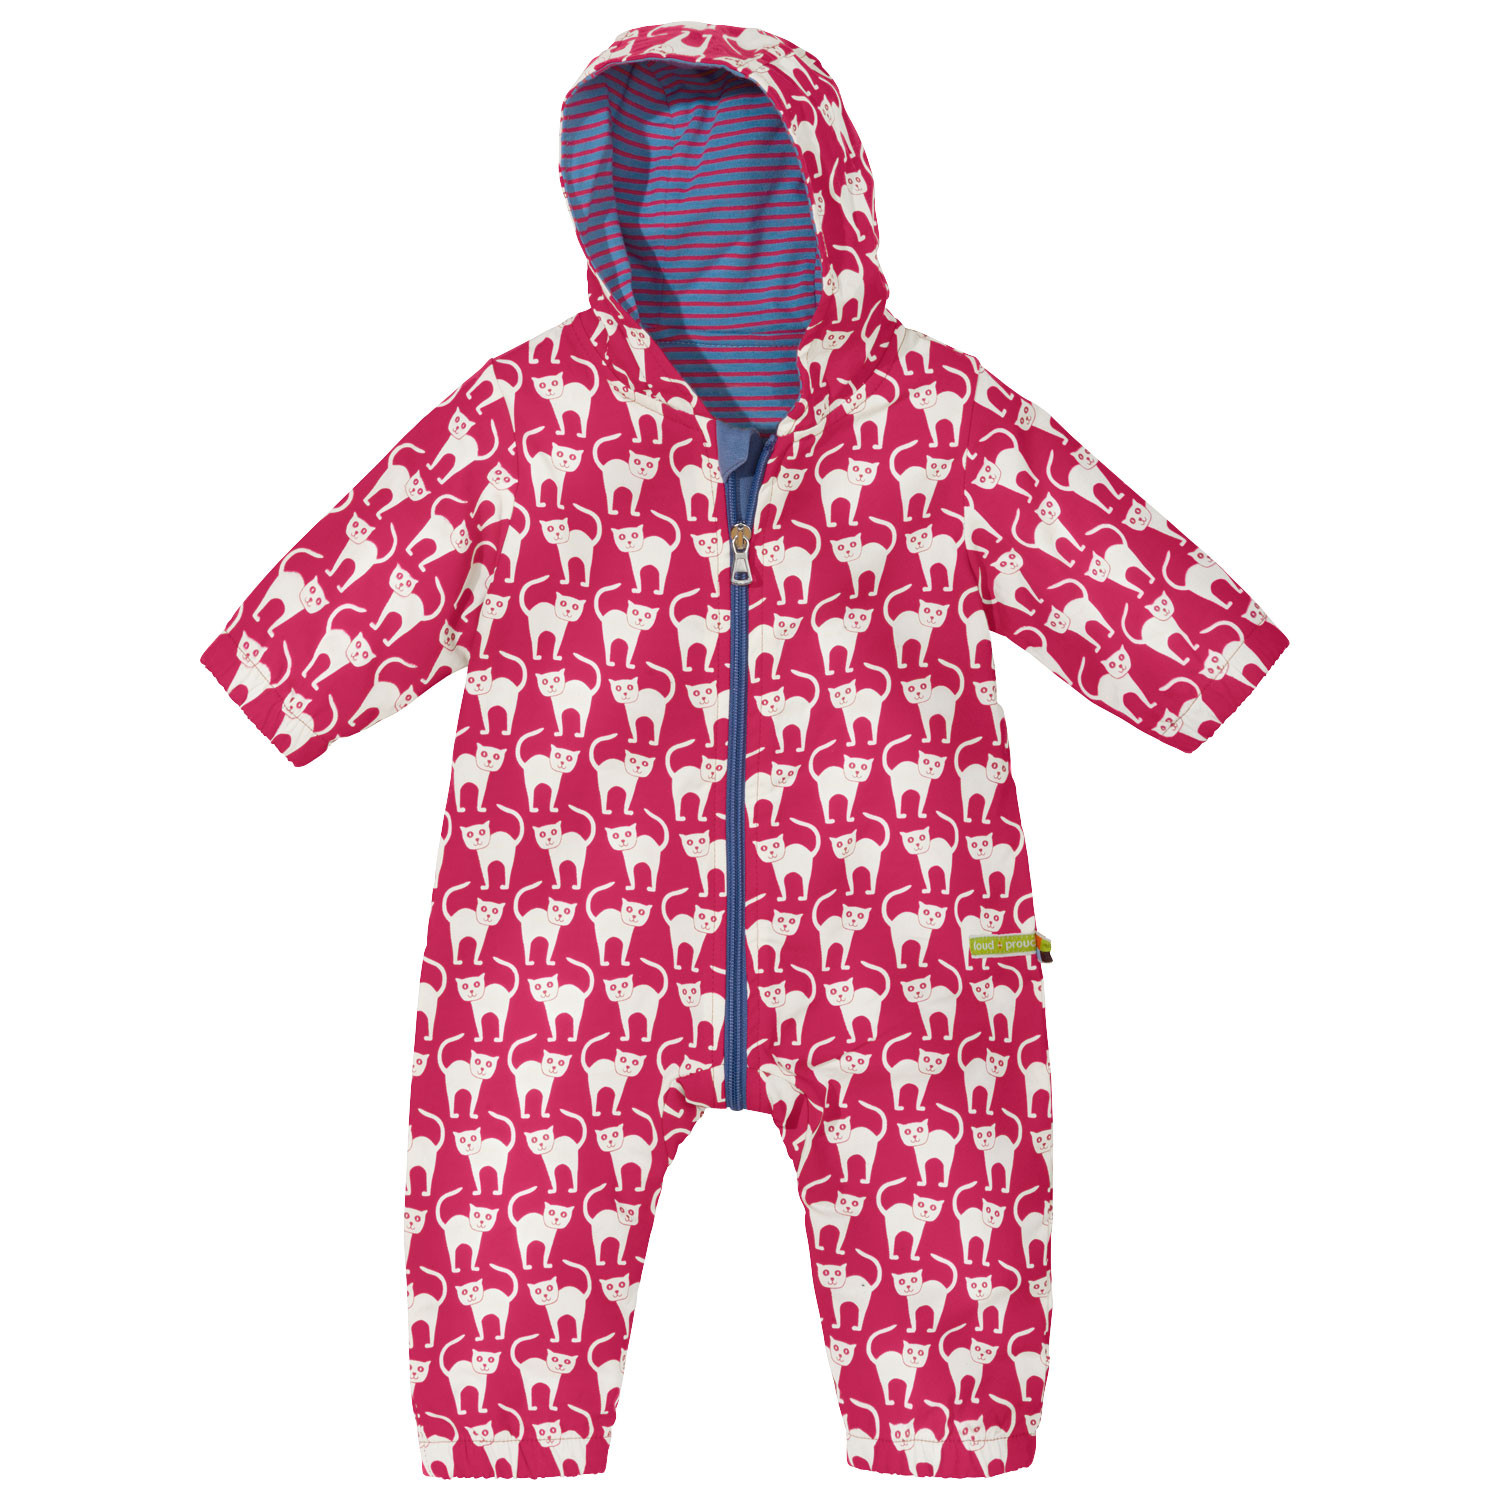 Baby-Outdooroverall Bionic-Finish Eco, rot